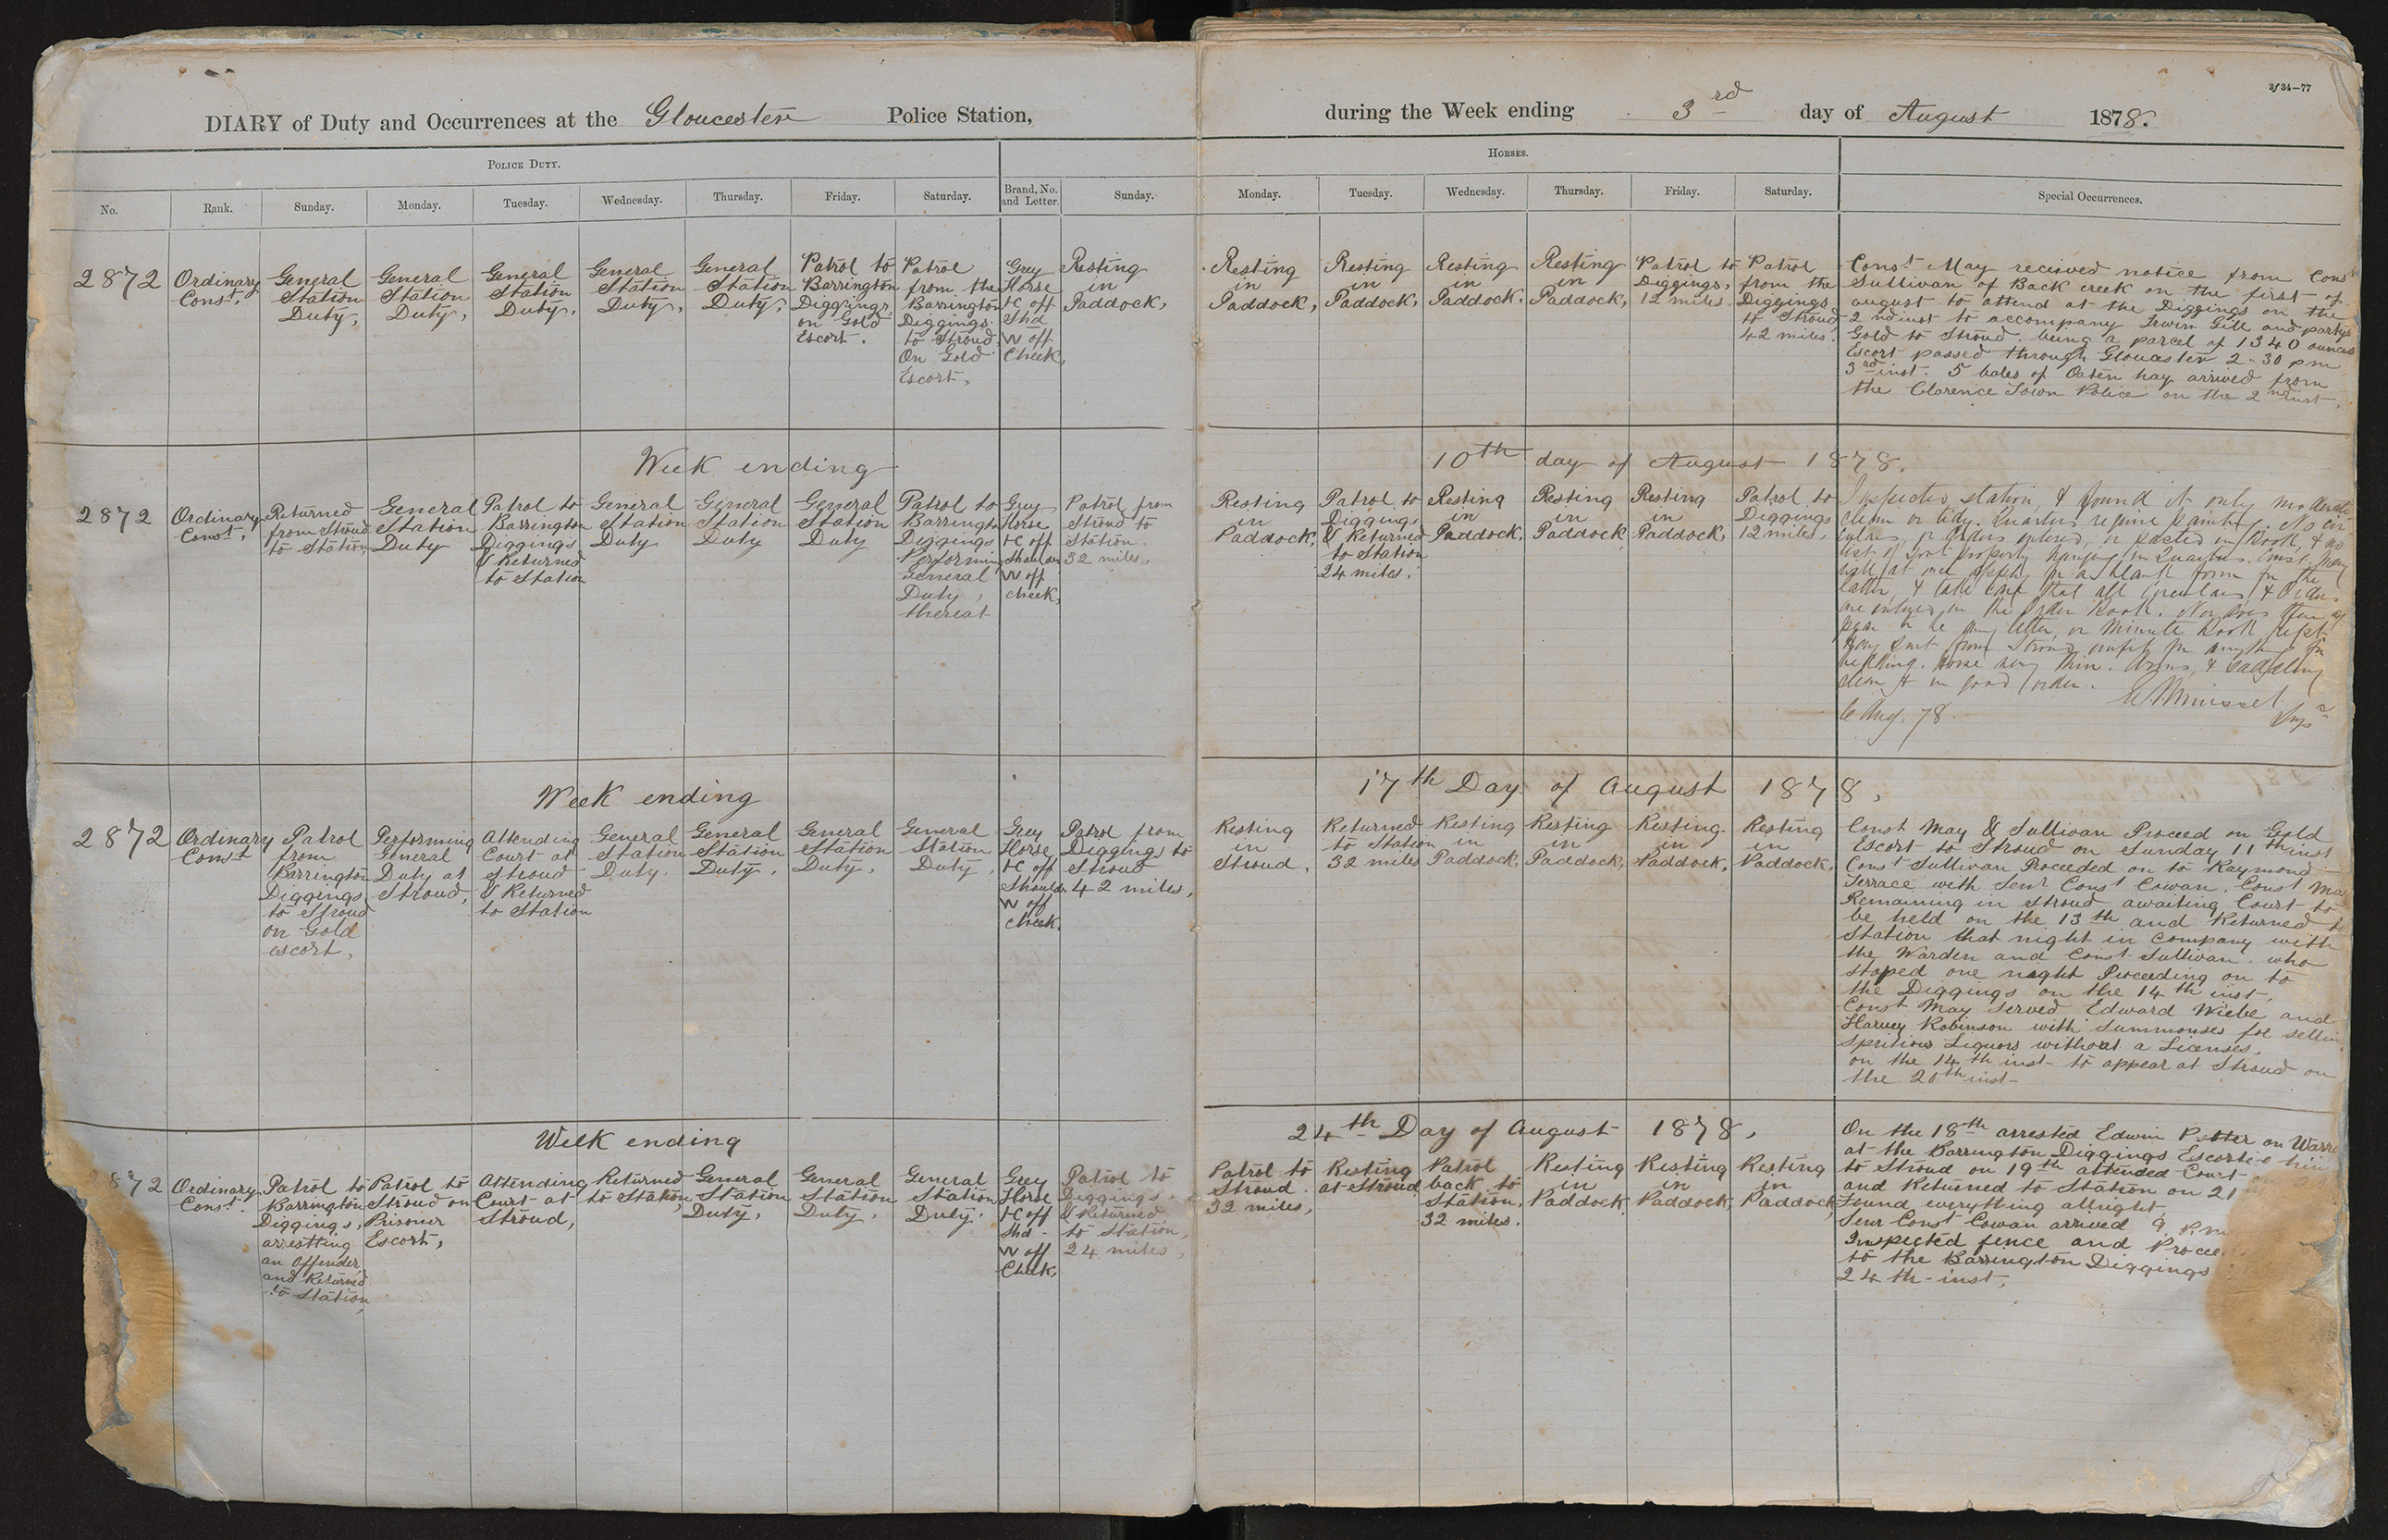 Diary of duty and occurrences at the Gloucester Police Station during the week ending the 3rd day of August 1878